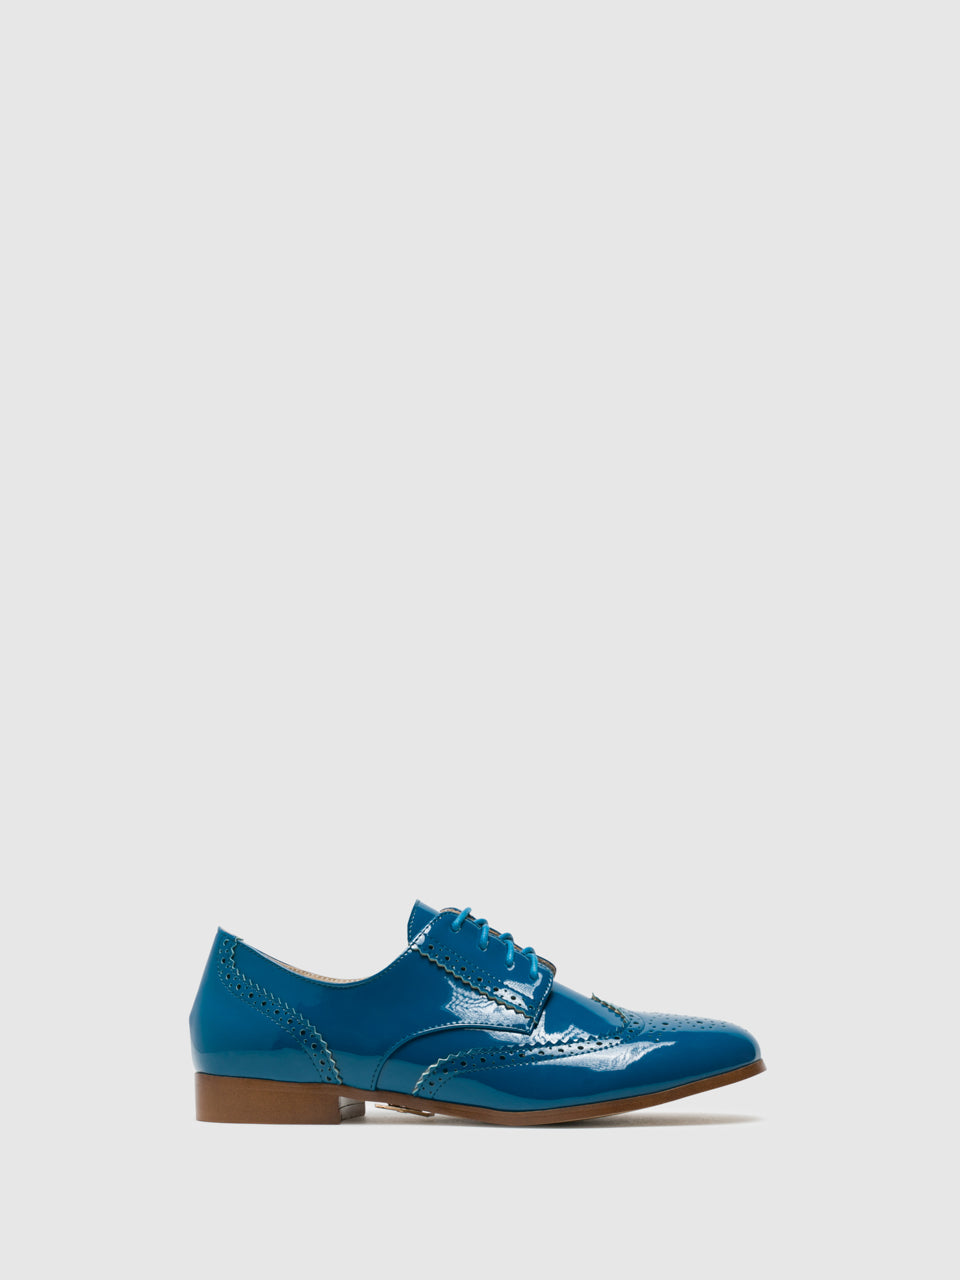 Yull Zapatos Oxford en color Azul Marino